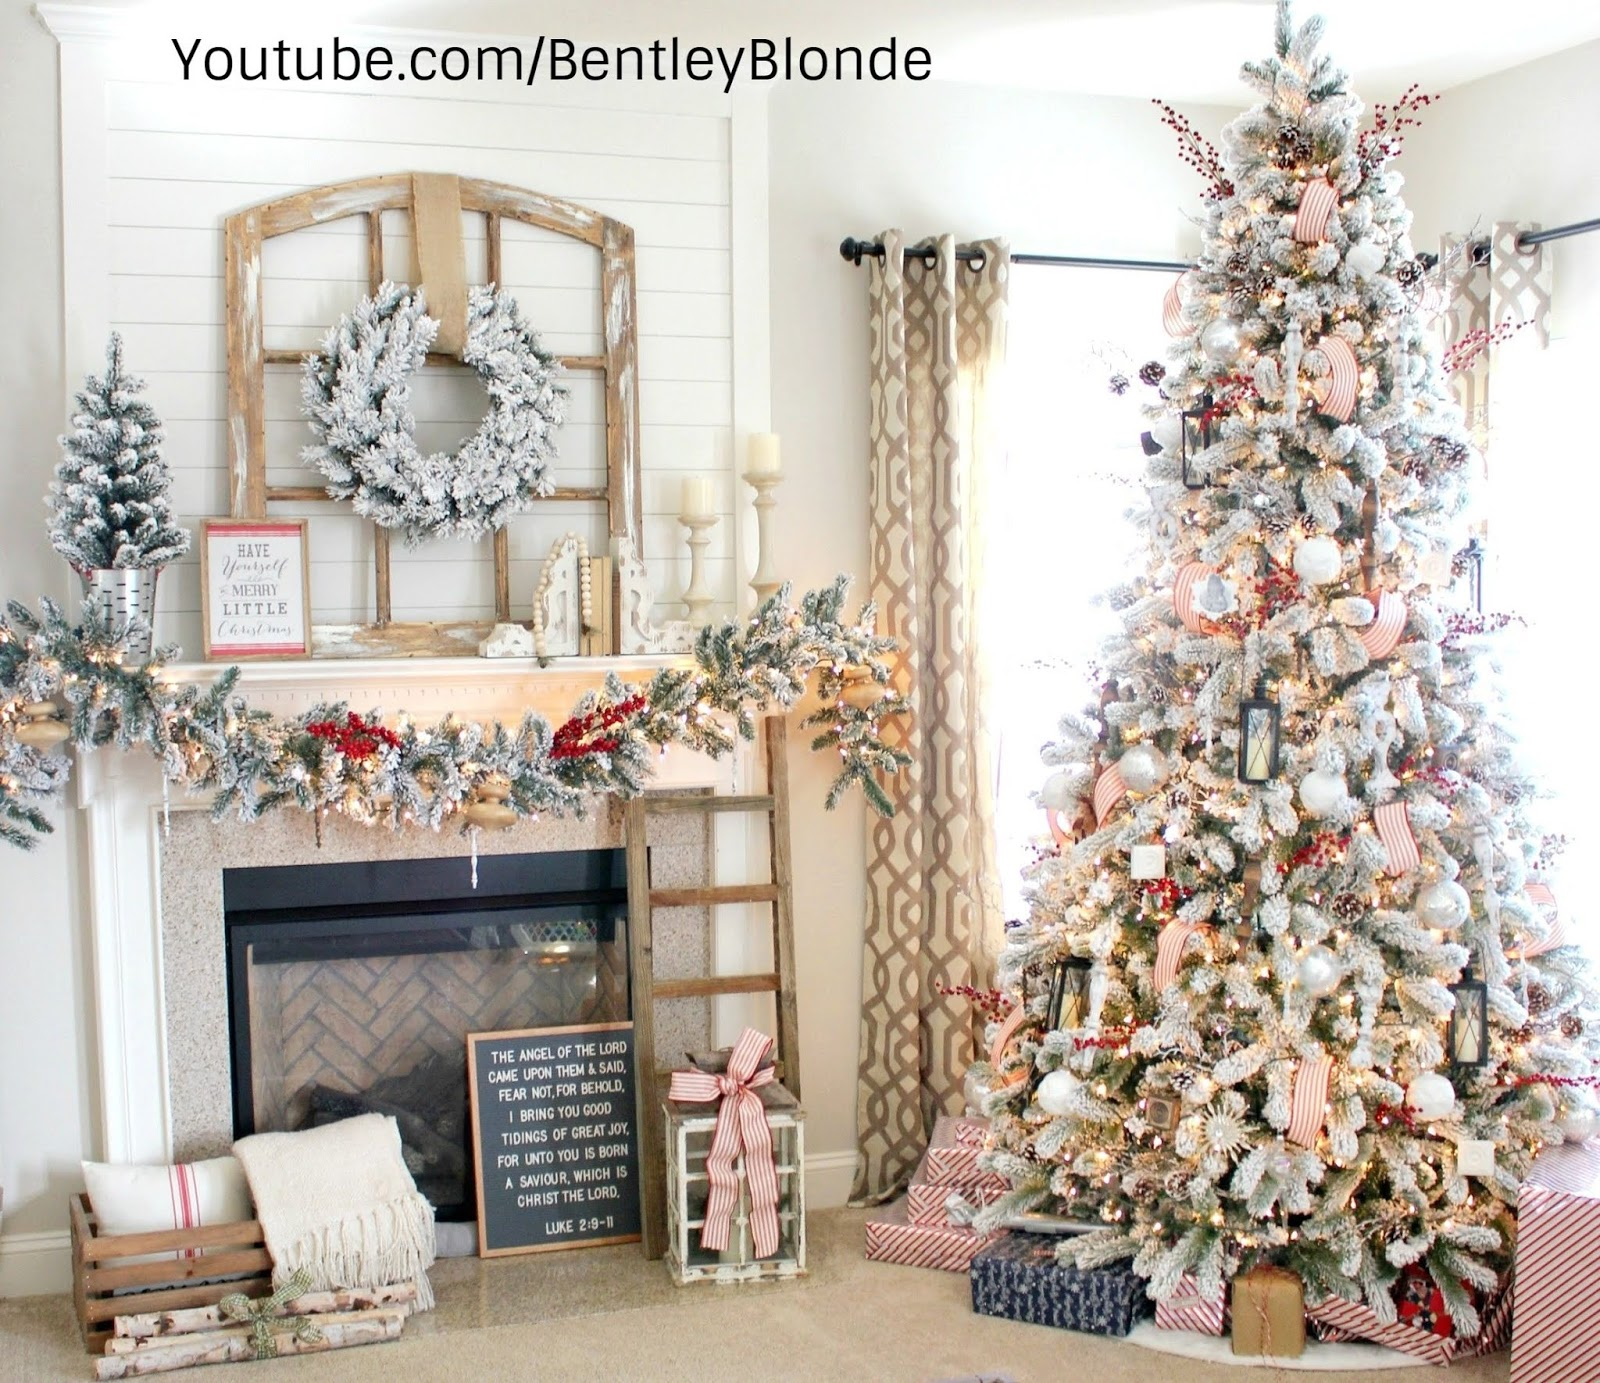 25 Trends In Home Decor For 2018: Christmas Decor Trends 2018